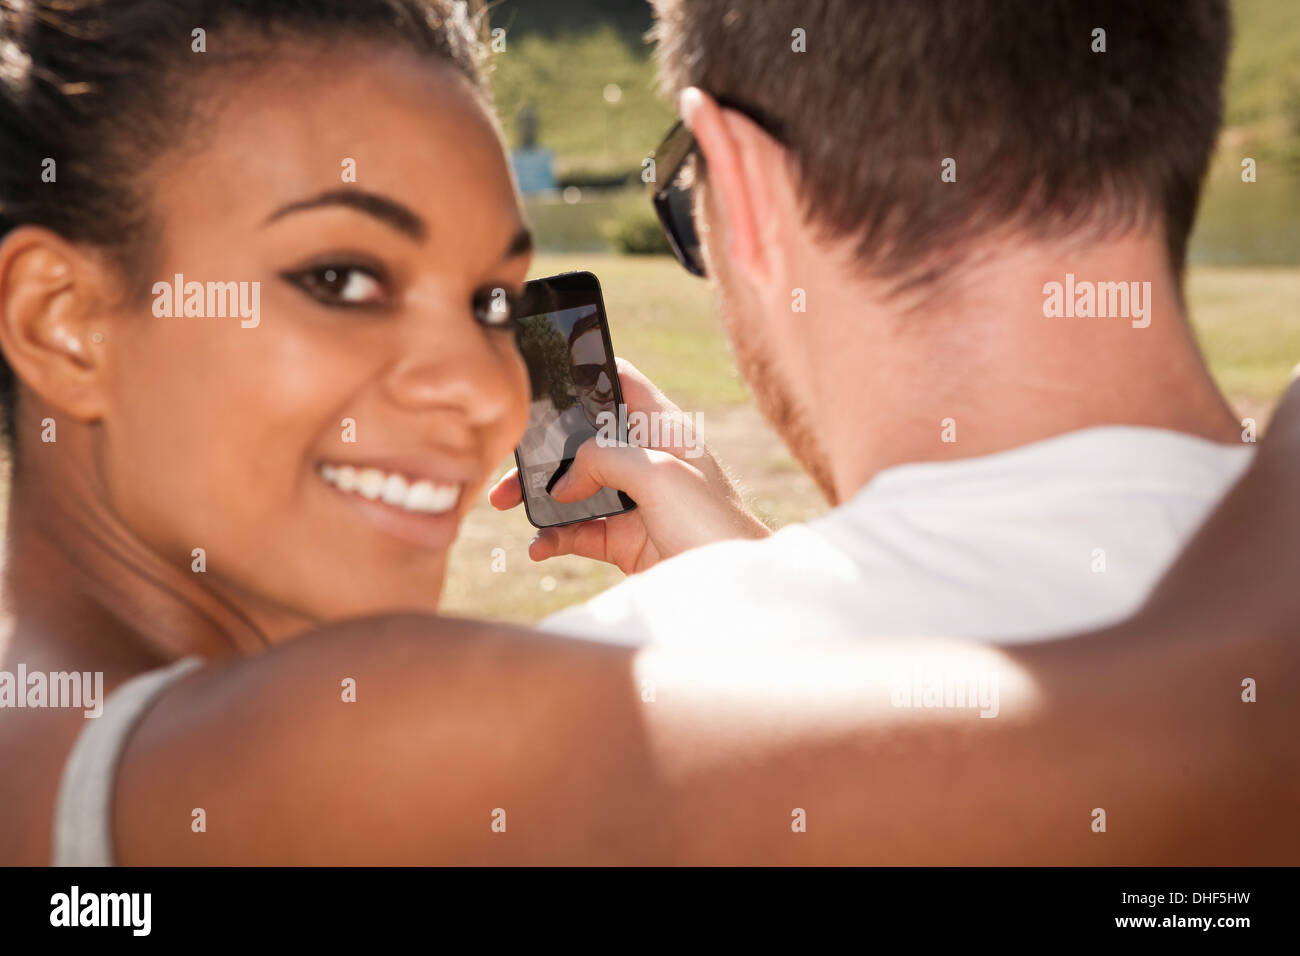 Young couple taking picture of themselves with phone, woman looking over shoulder - Stock Image